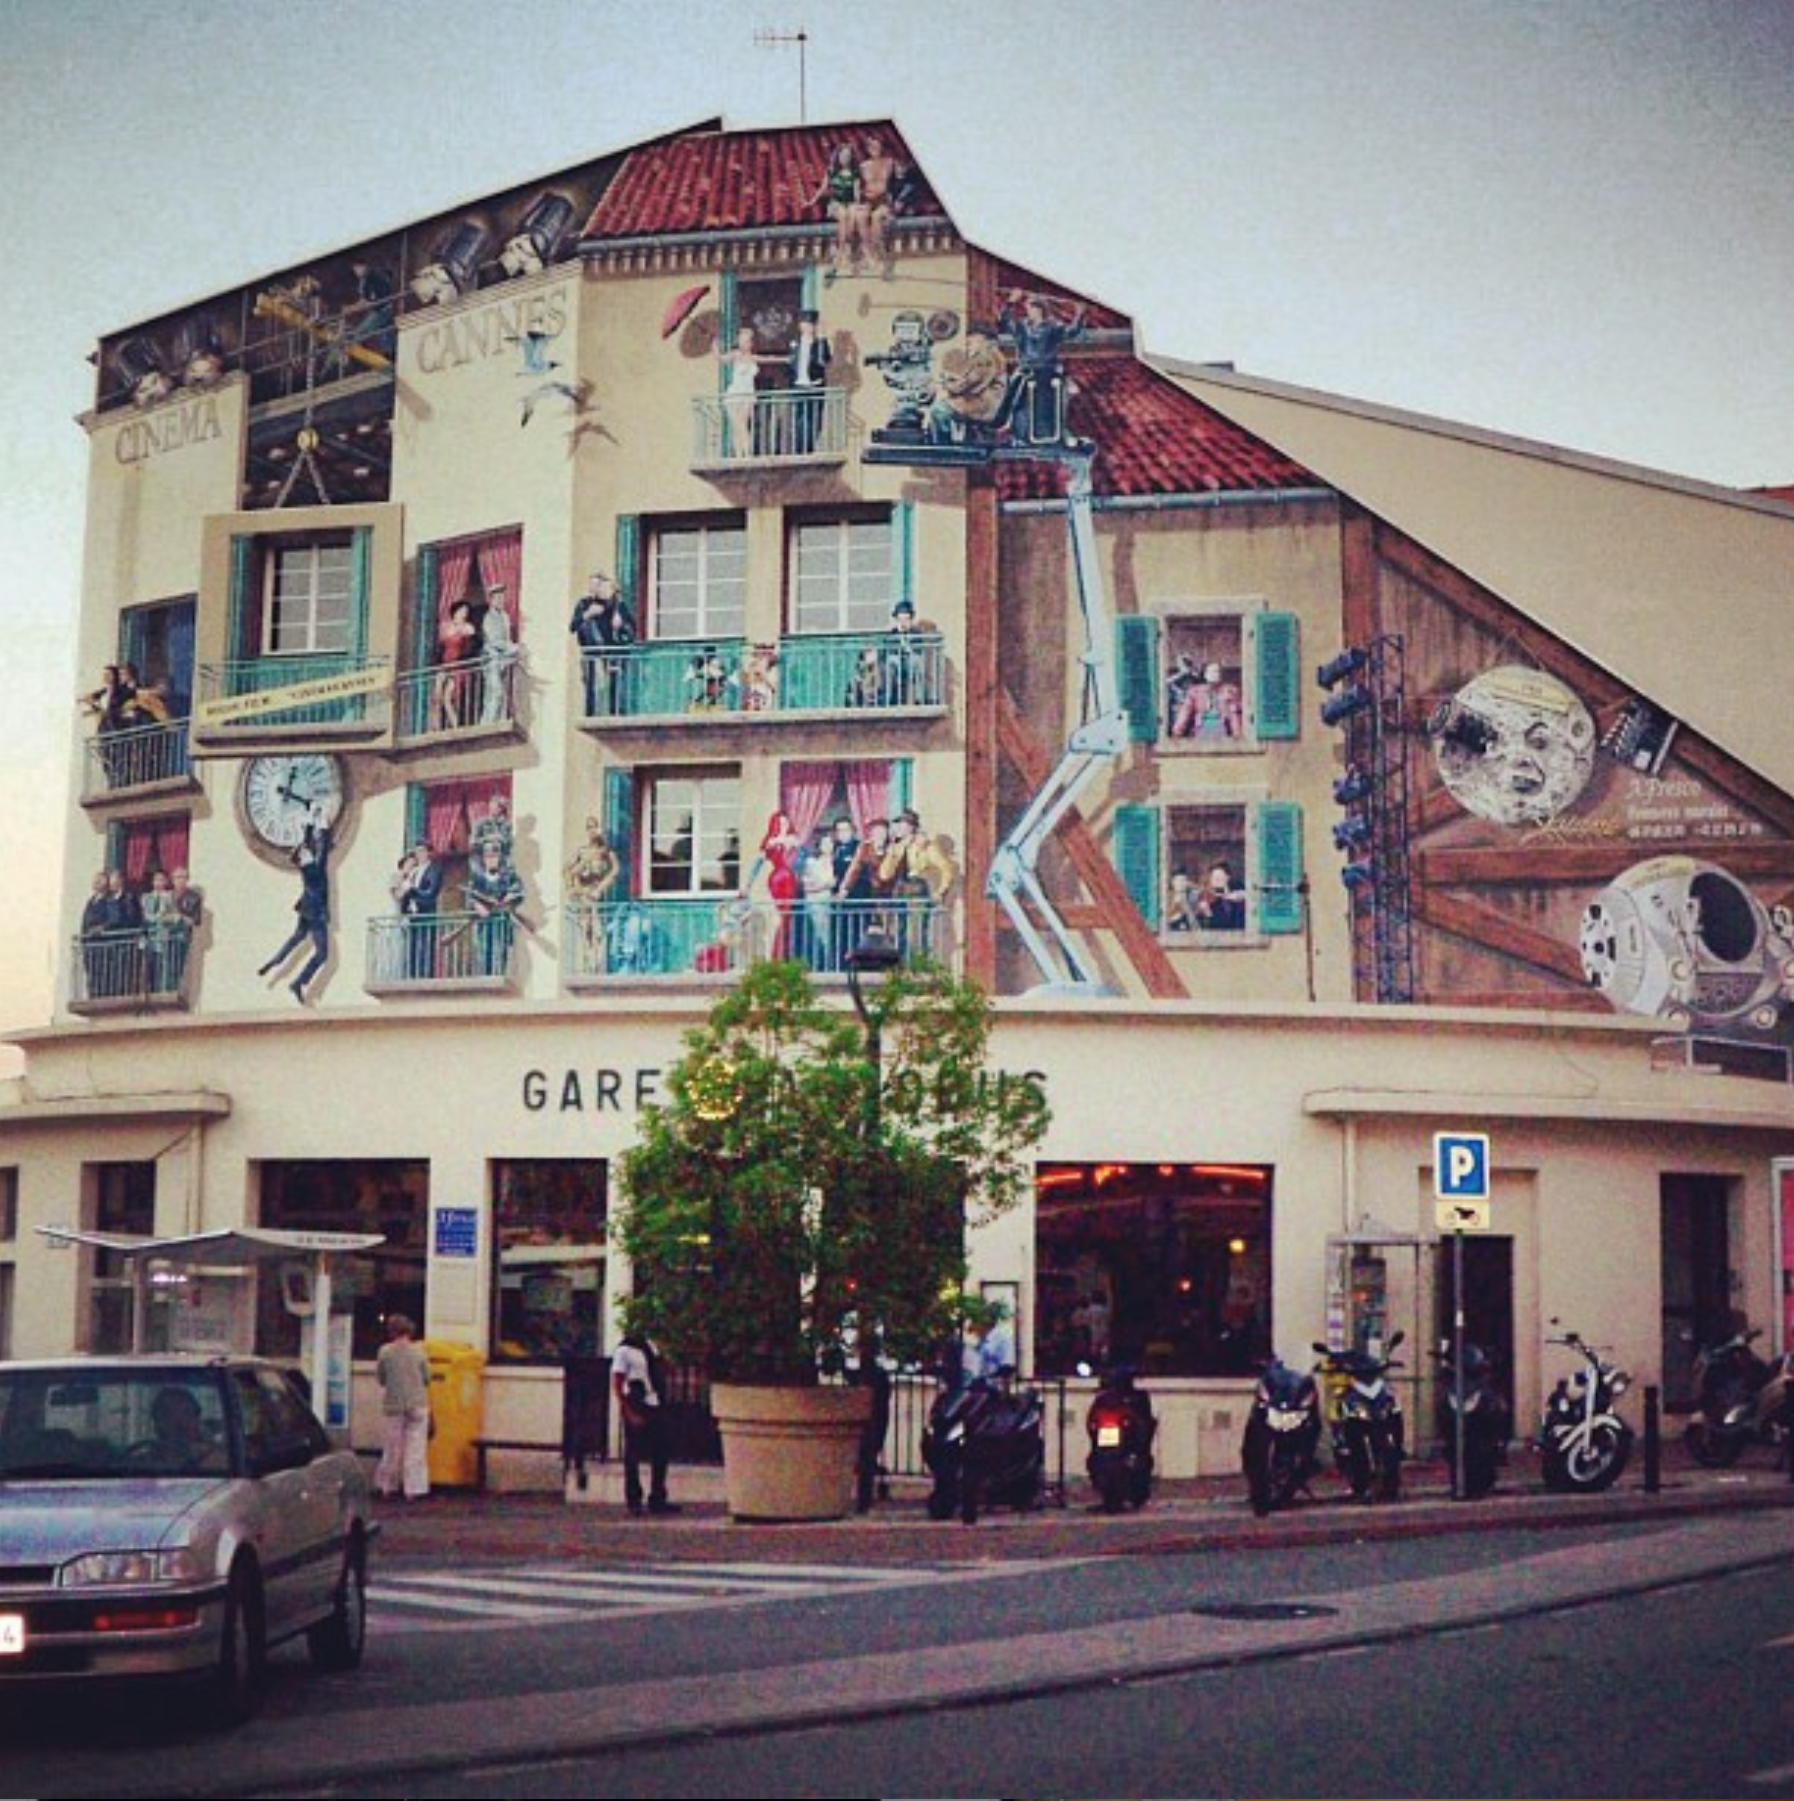 cannes cinema, the famous painted building in france